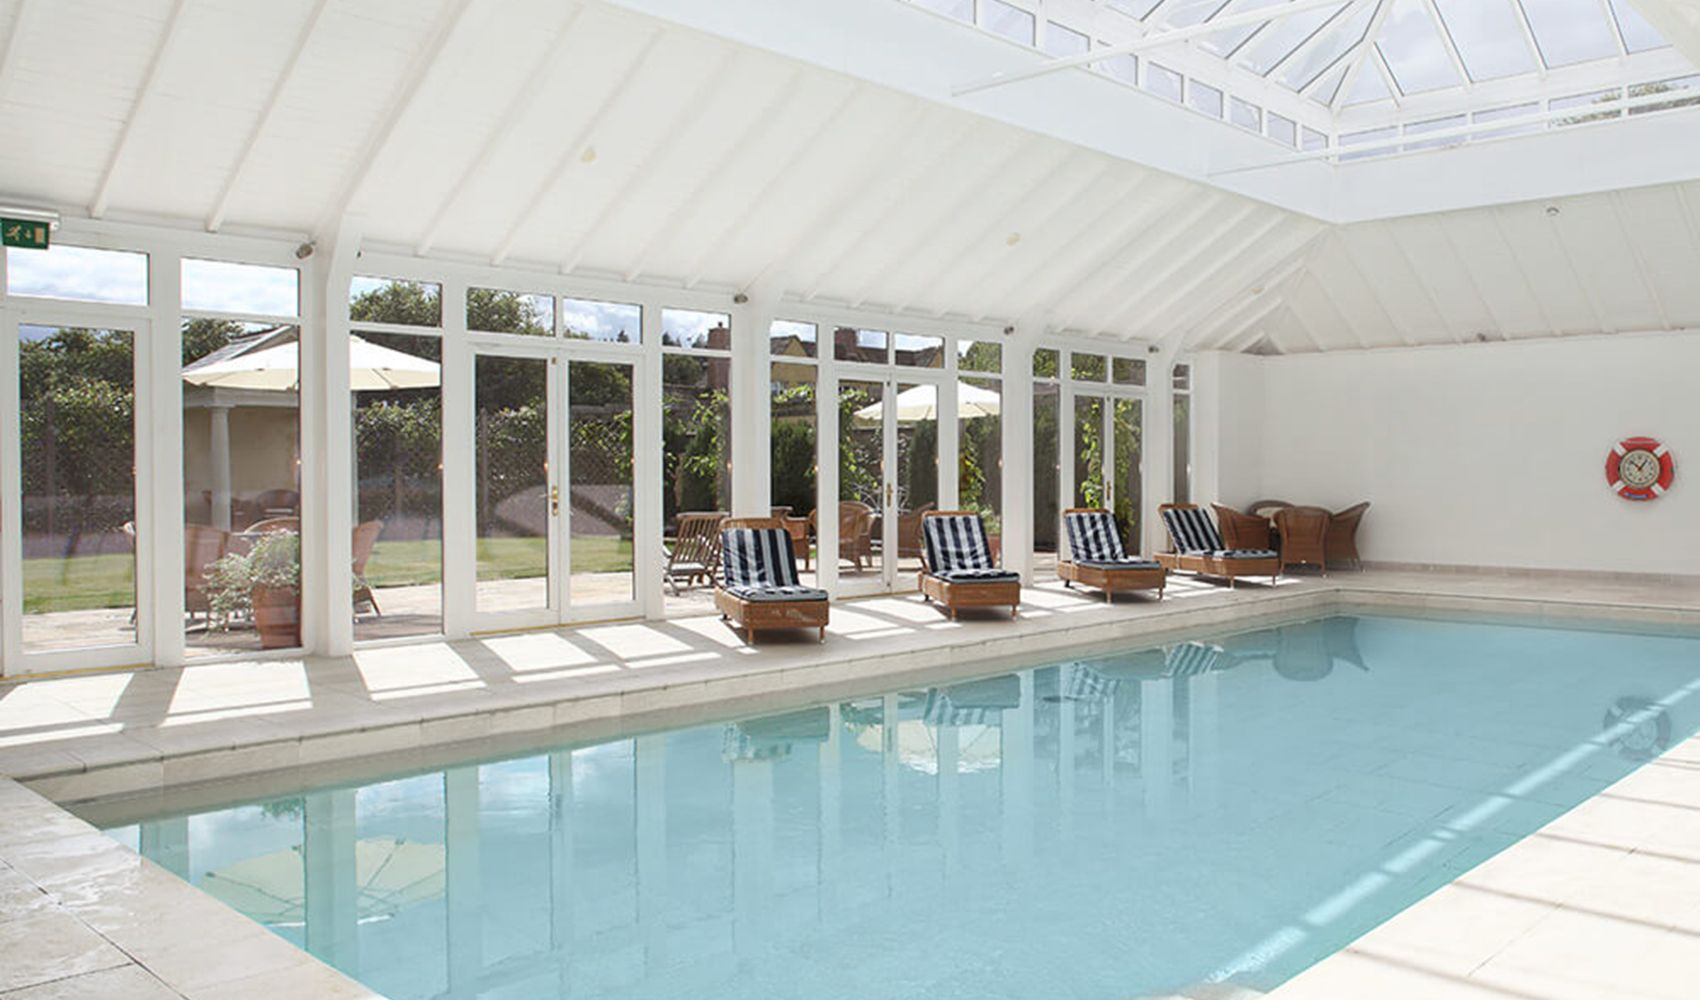 Shared indoor heated pool opening onto a beautiful garden with sun loungers